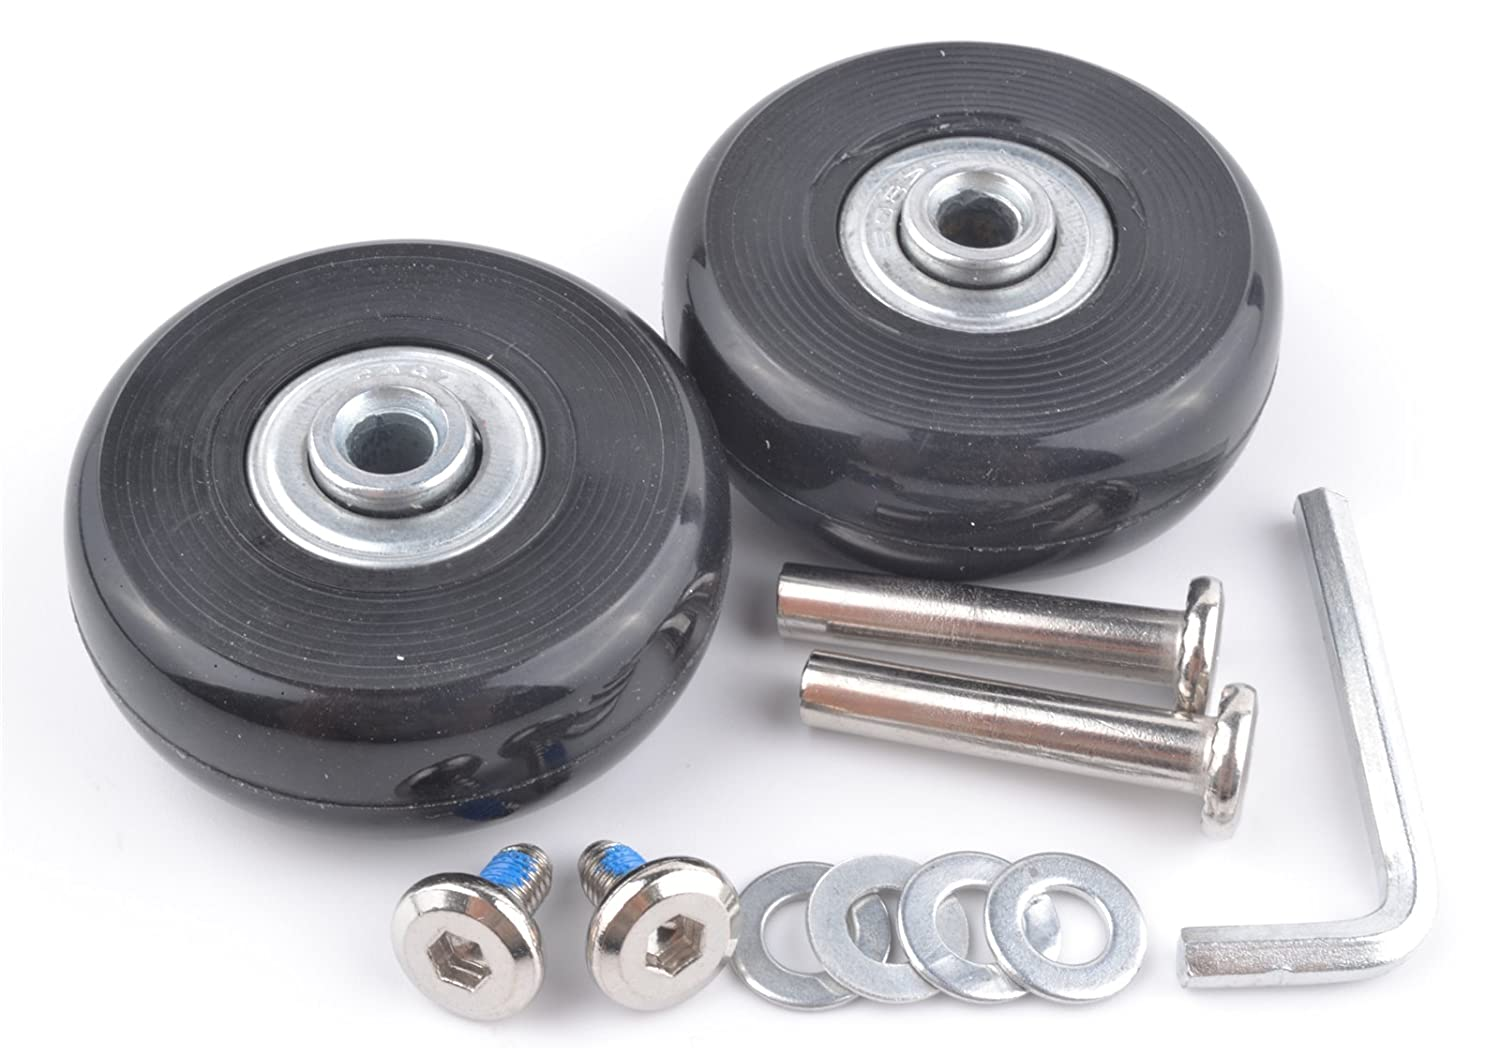 Amazon.com: 2 Set Luggage Suitcase Replacement Wheels Axles 30 ...